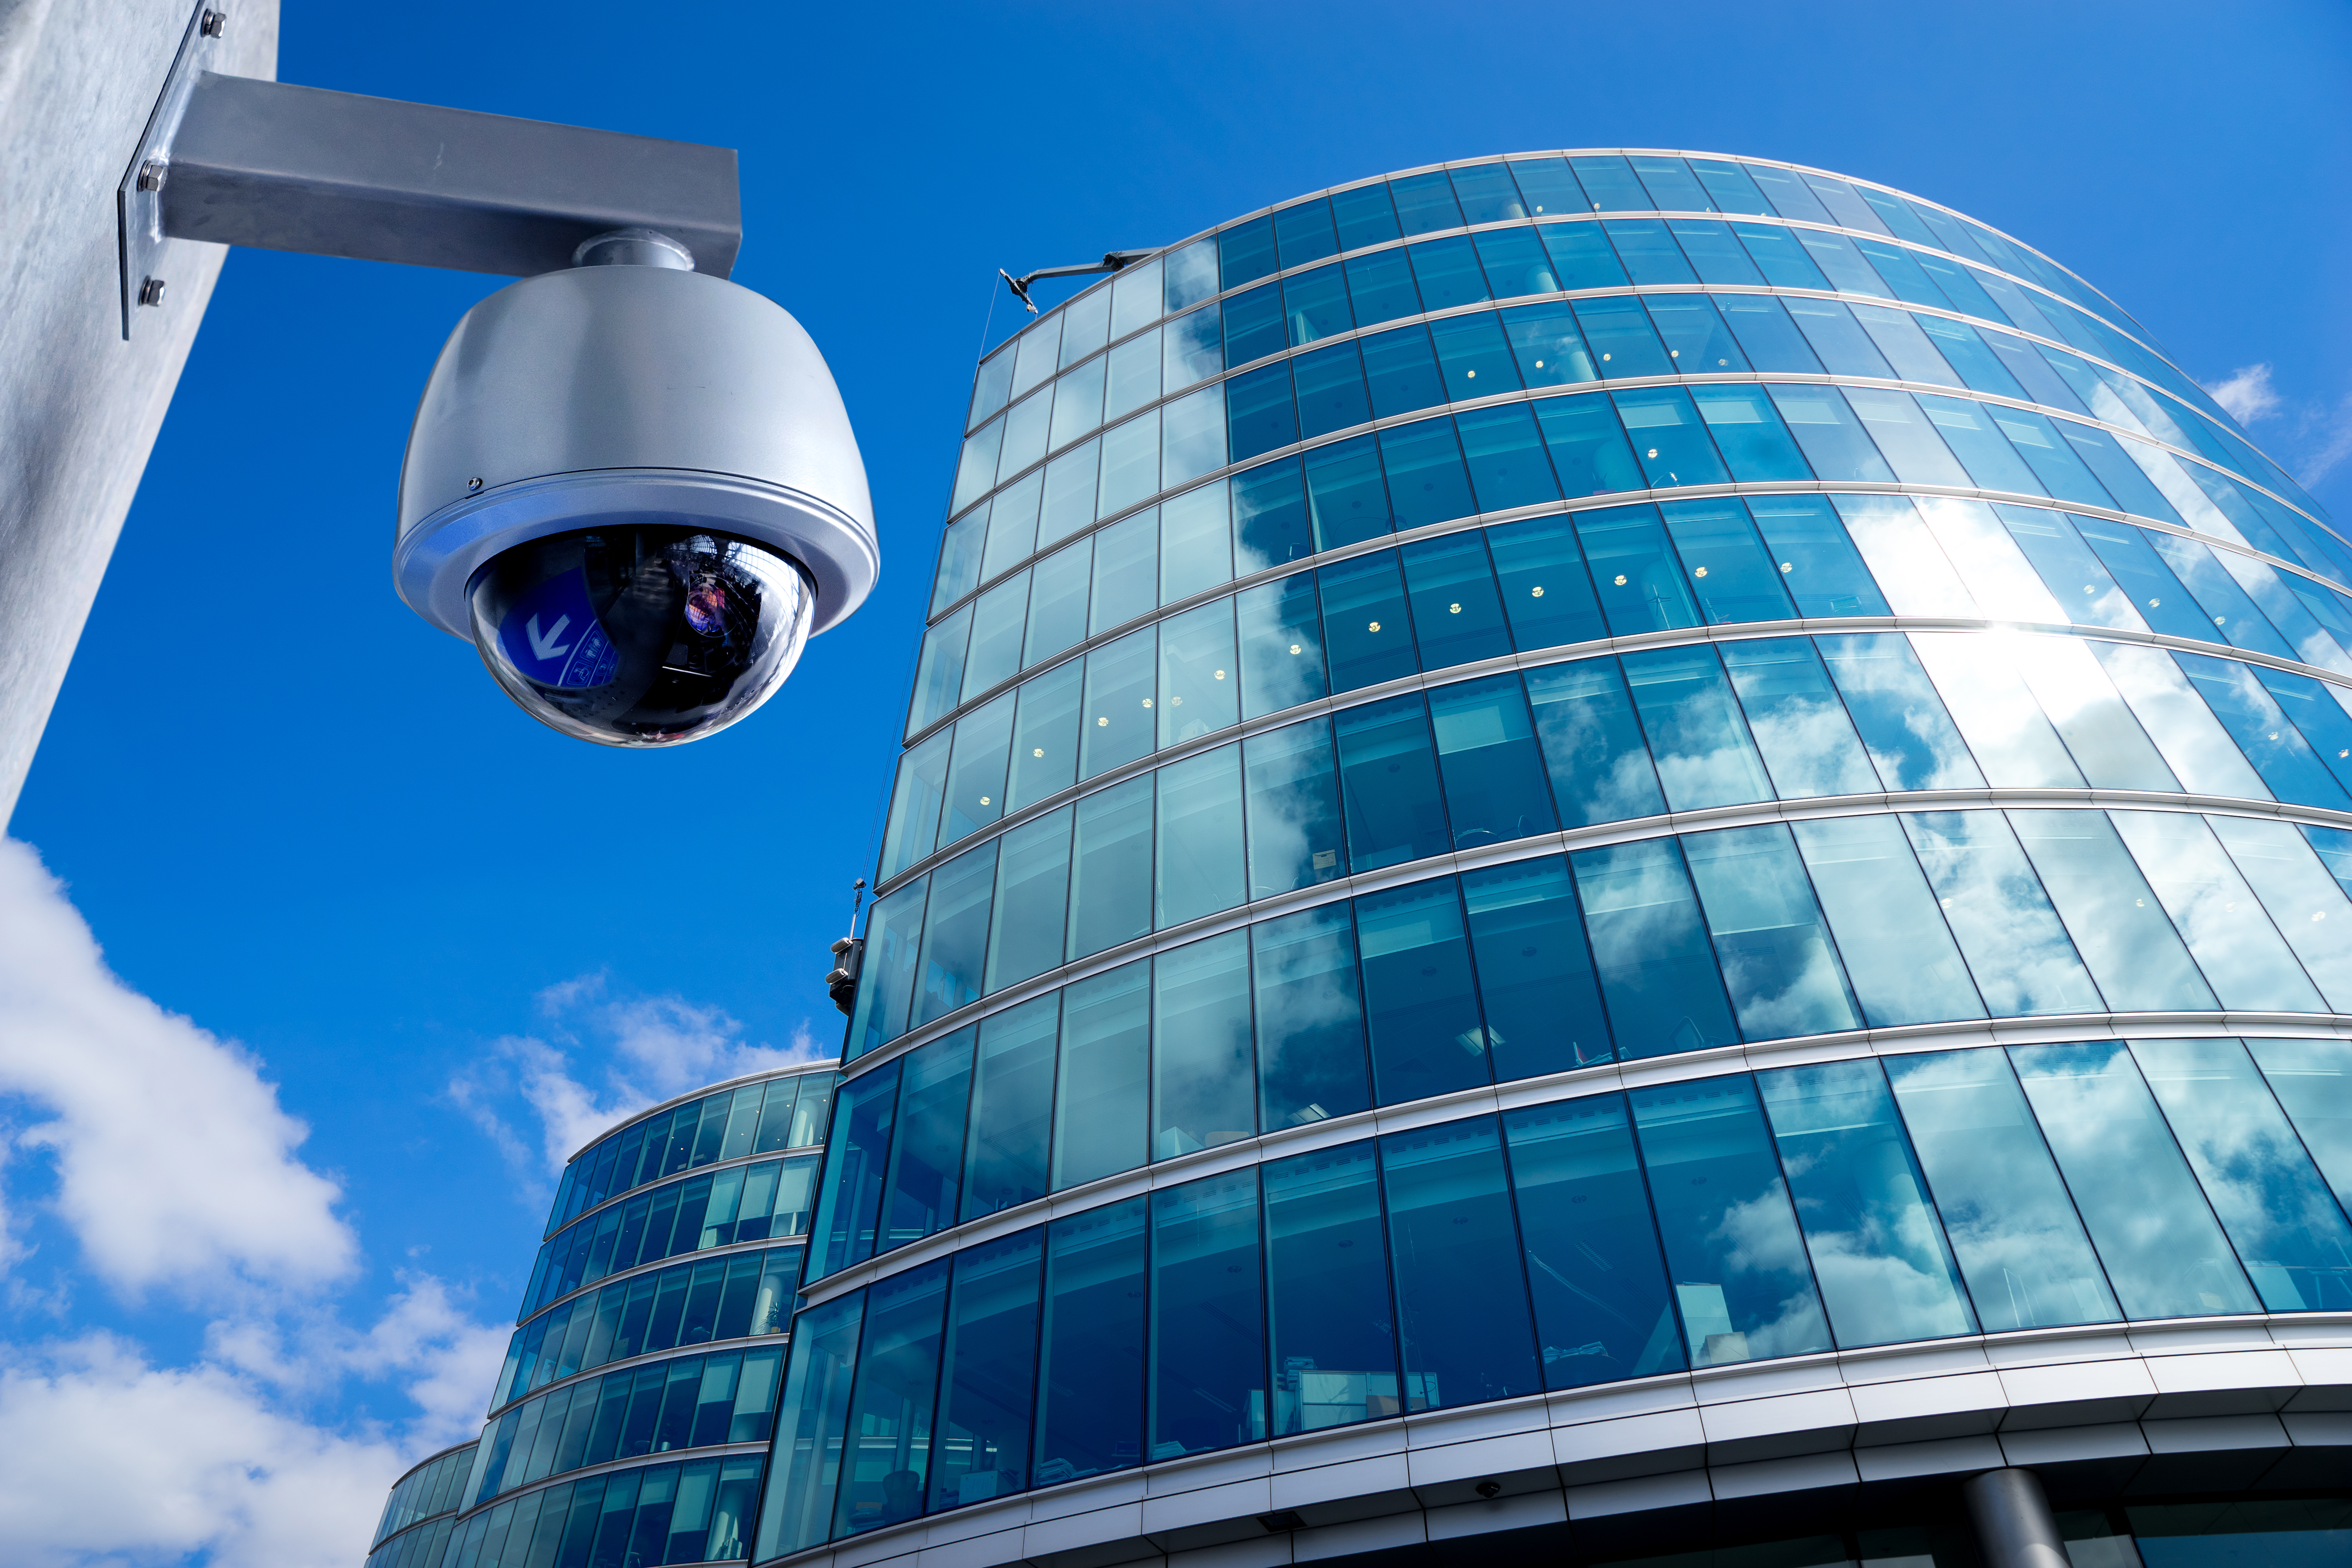 8 Tips to Keep Your Office Secure